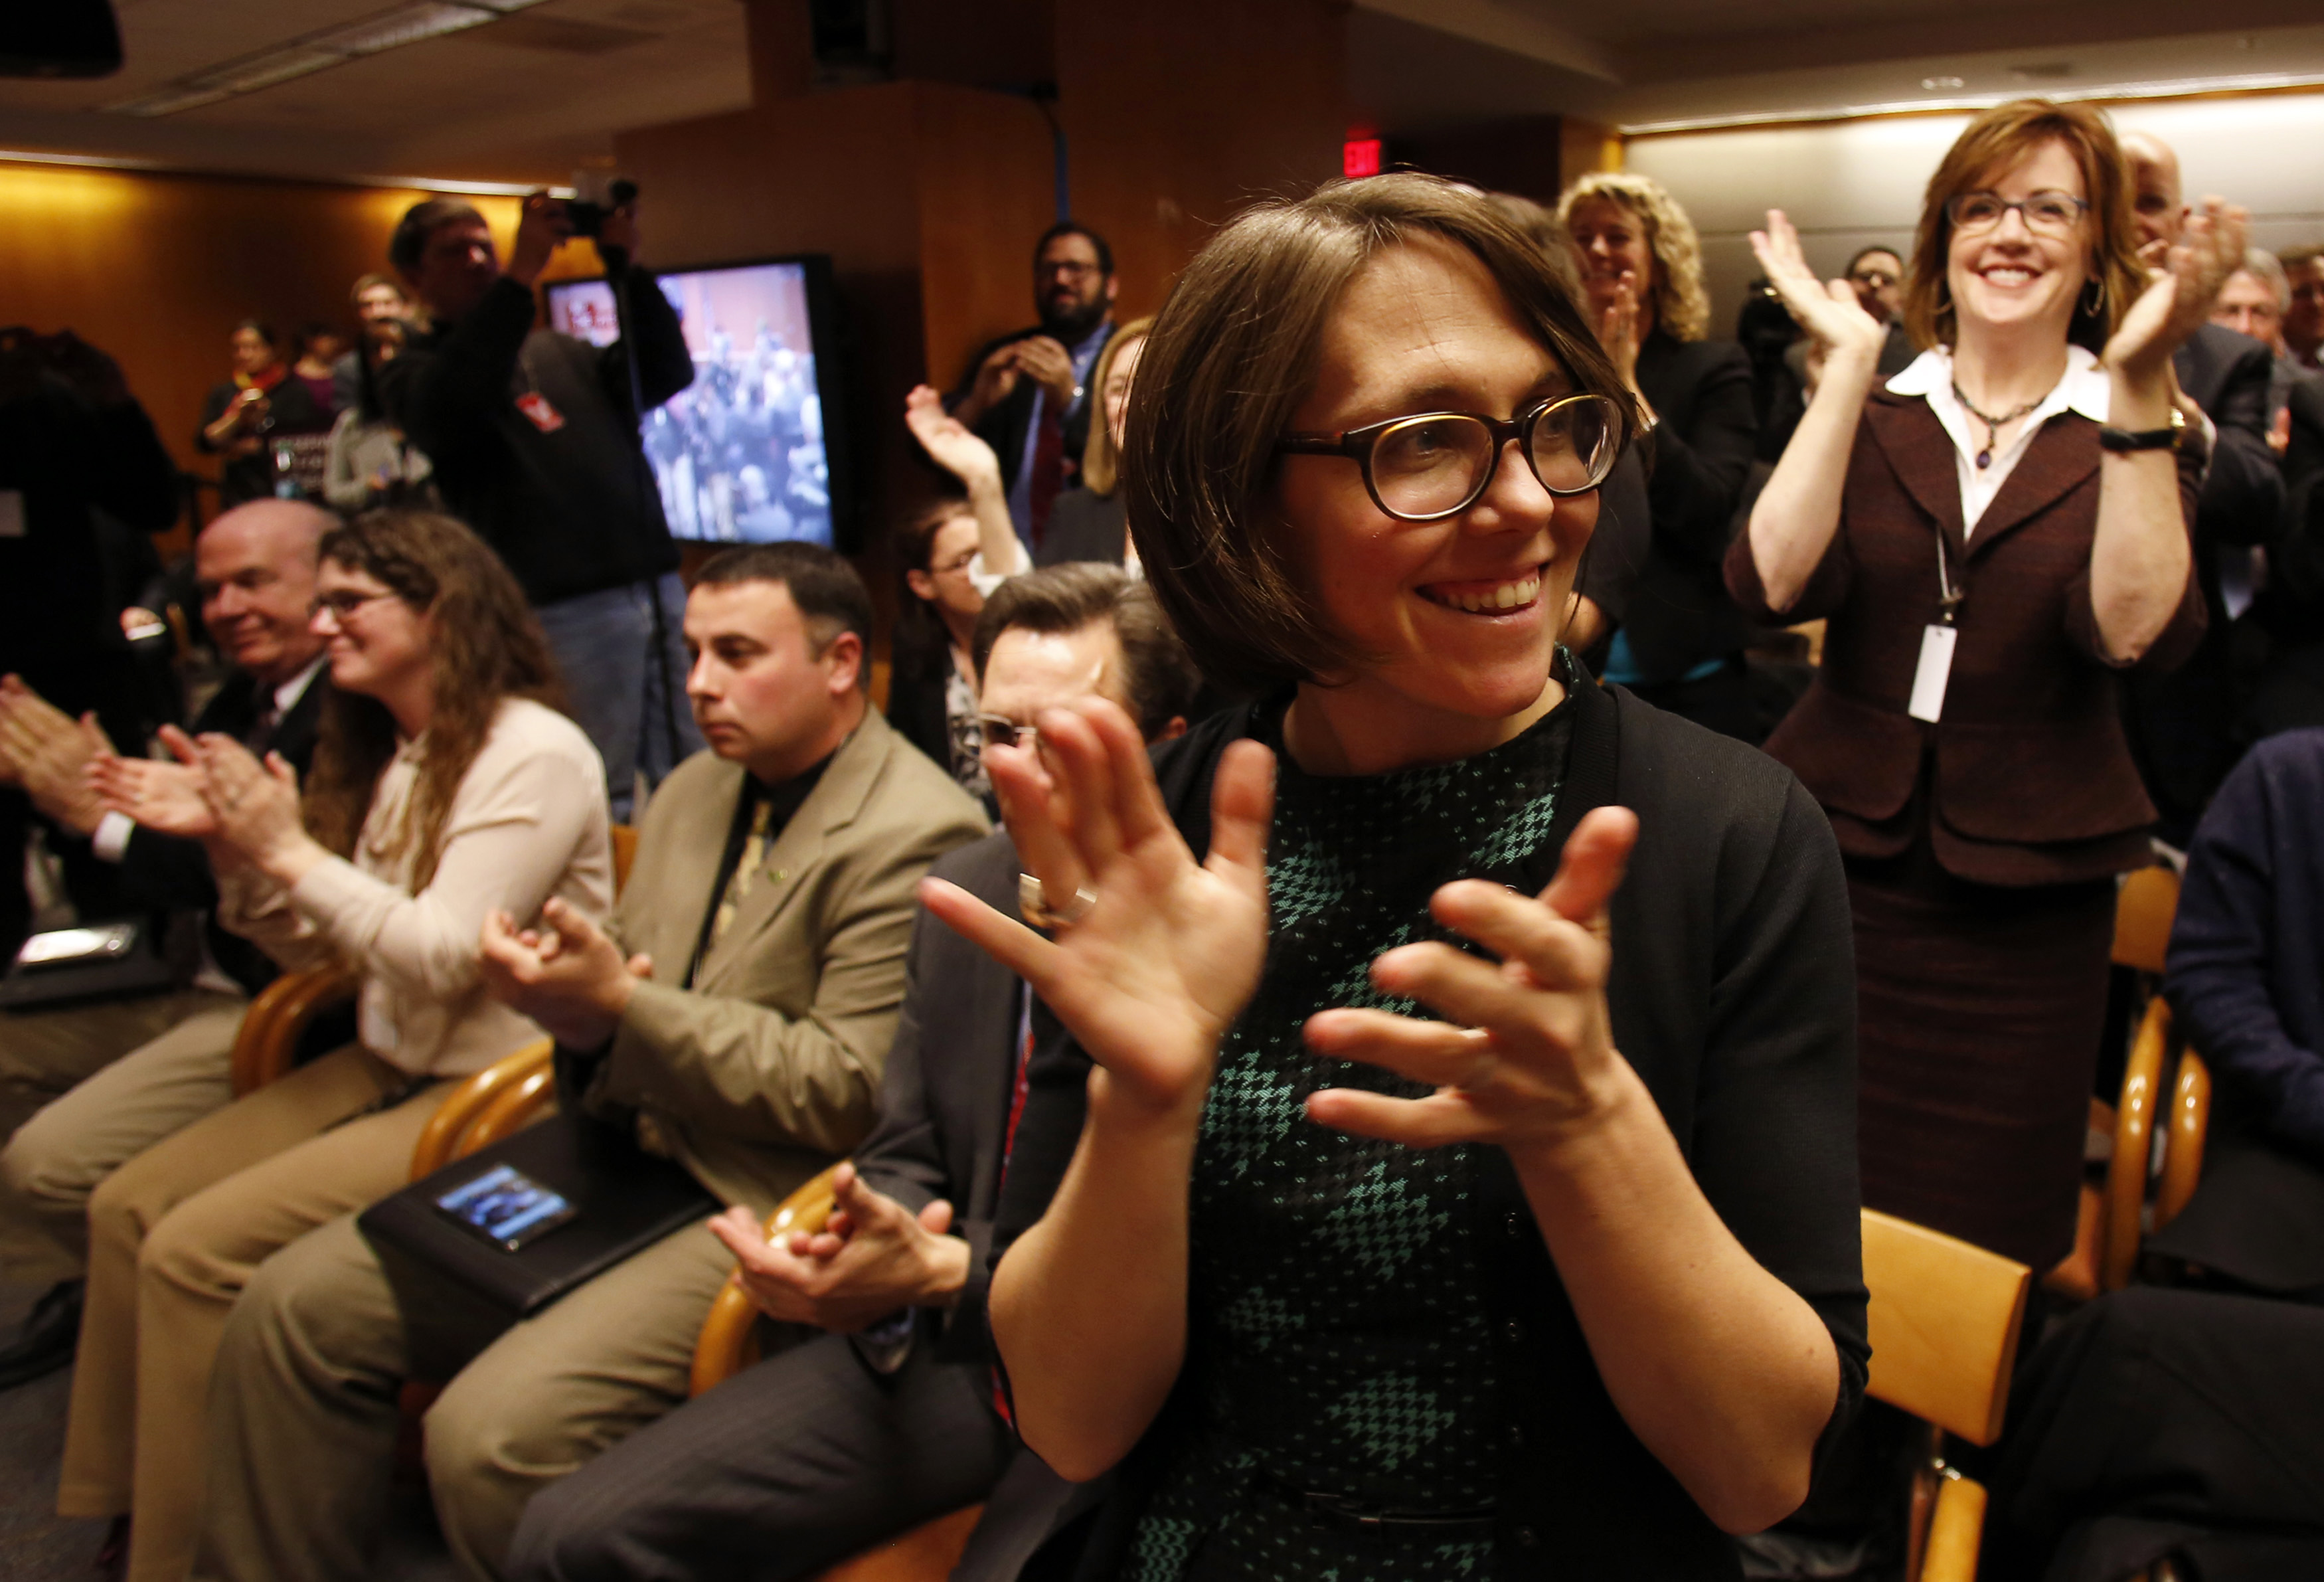 Members of the audience react after Federal Communications Commission voting at Net Neutrality hearing in Washington